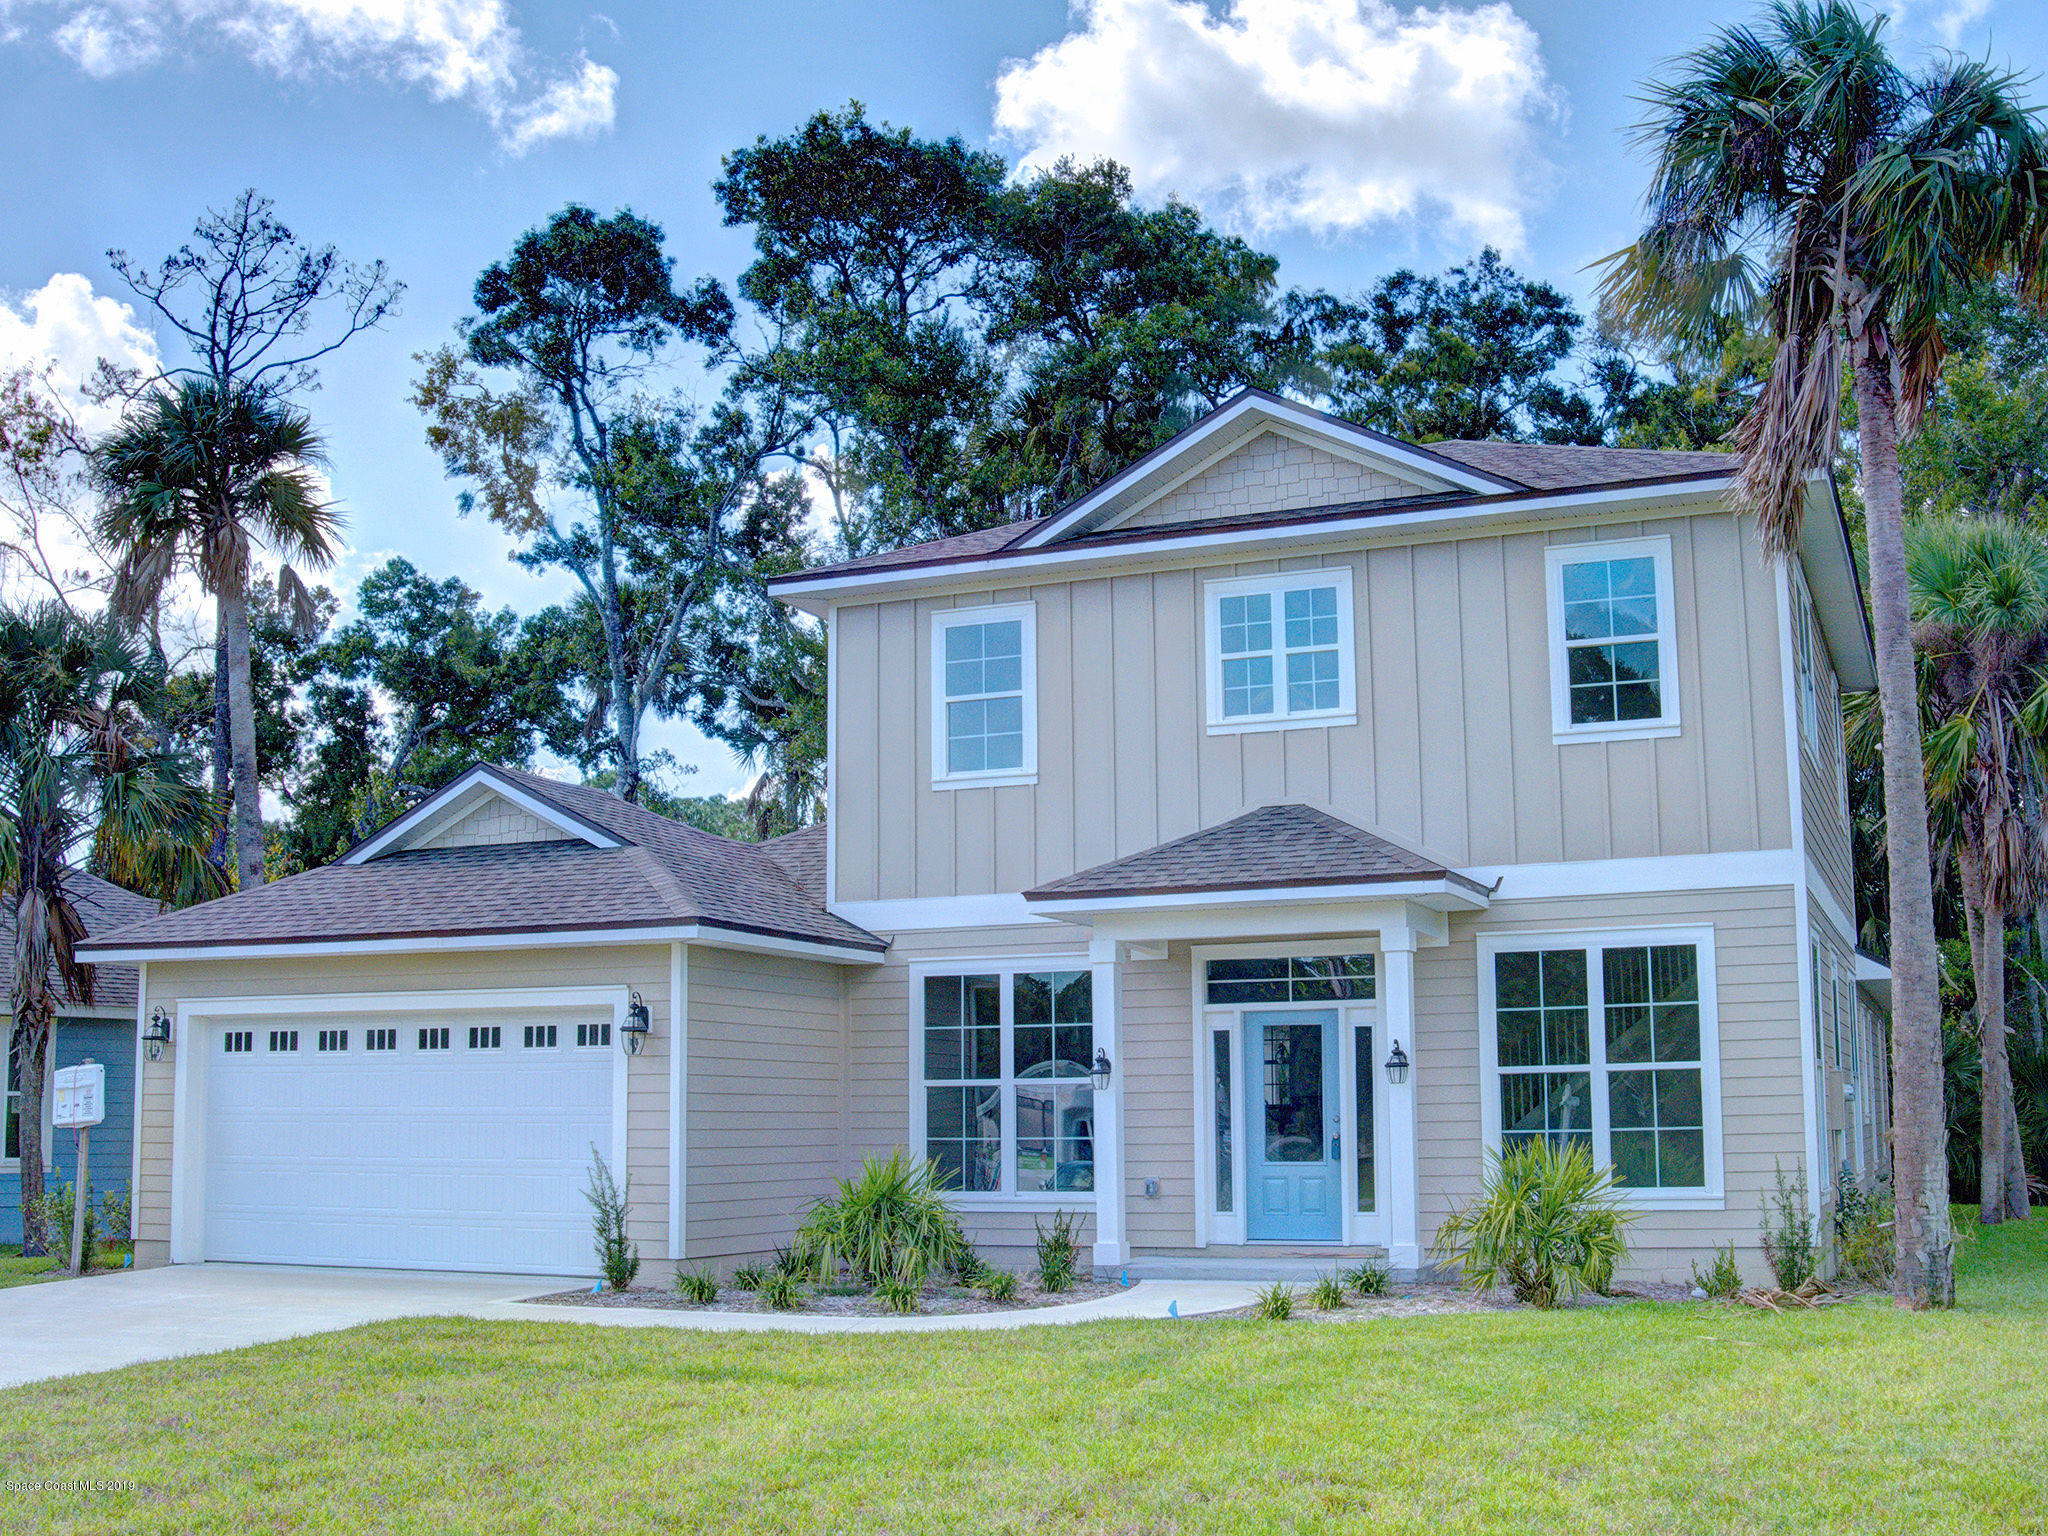 Single Family Homes for Sale at 420 Indigo Daytona Beach, Florida 32114 United States